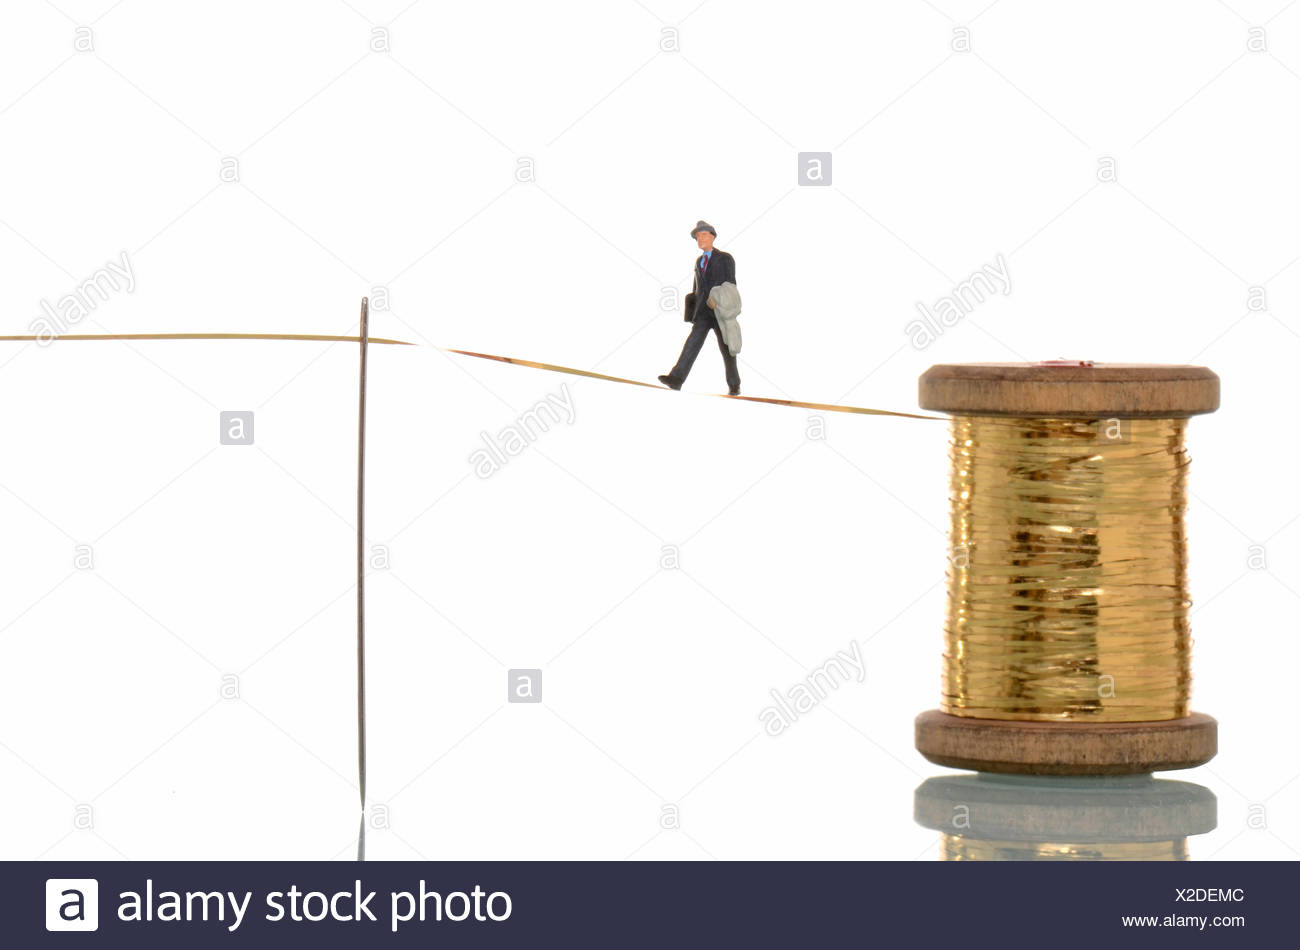 Business man figure balancing on golden thread, symbolic image for the highwire act of gold prices - Stock Image